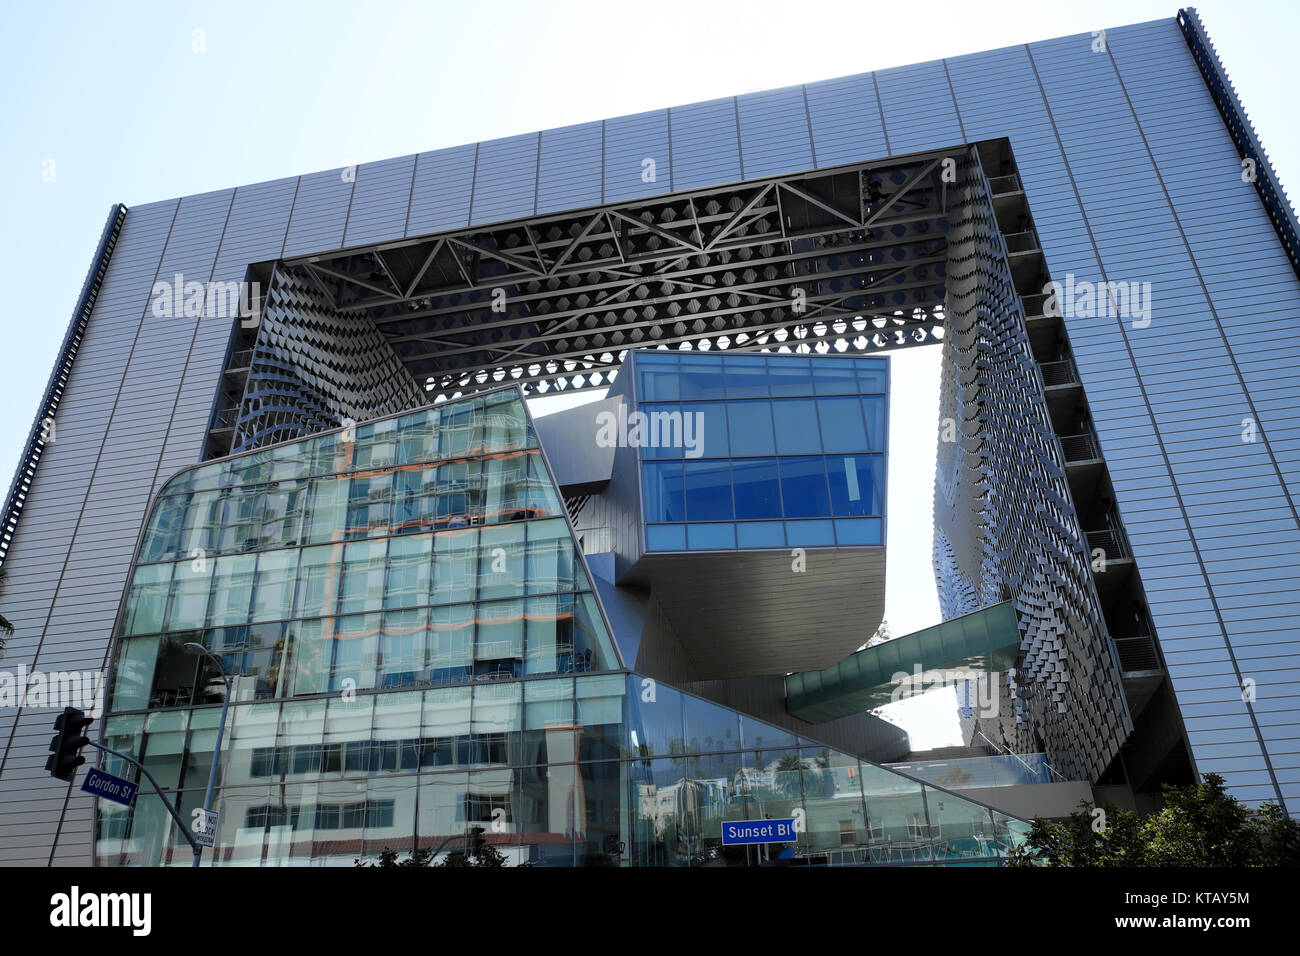 Emerson College Los Angeles >> Front View Of Emerson College Building Designed By Morphosis Stock